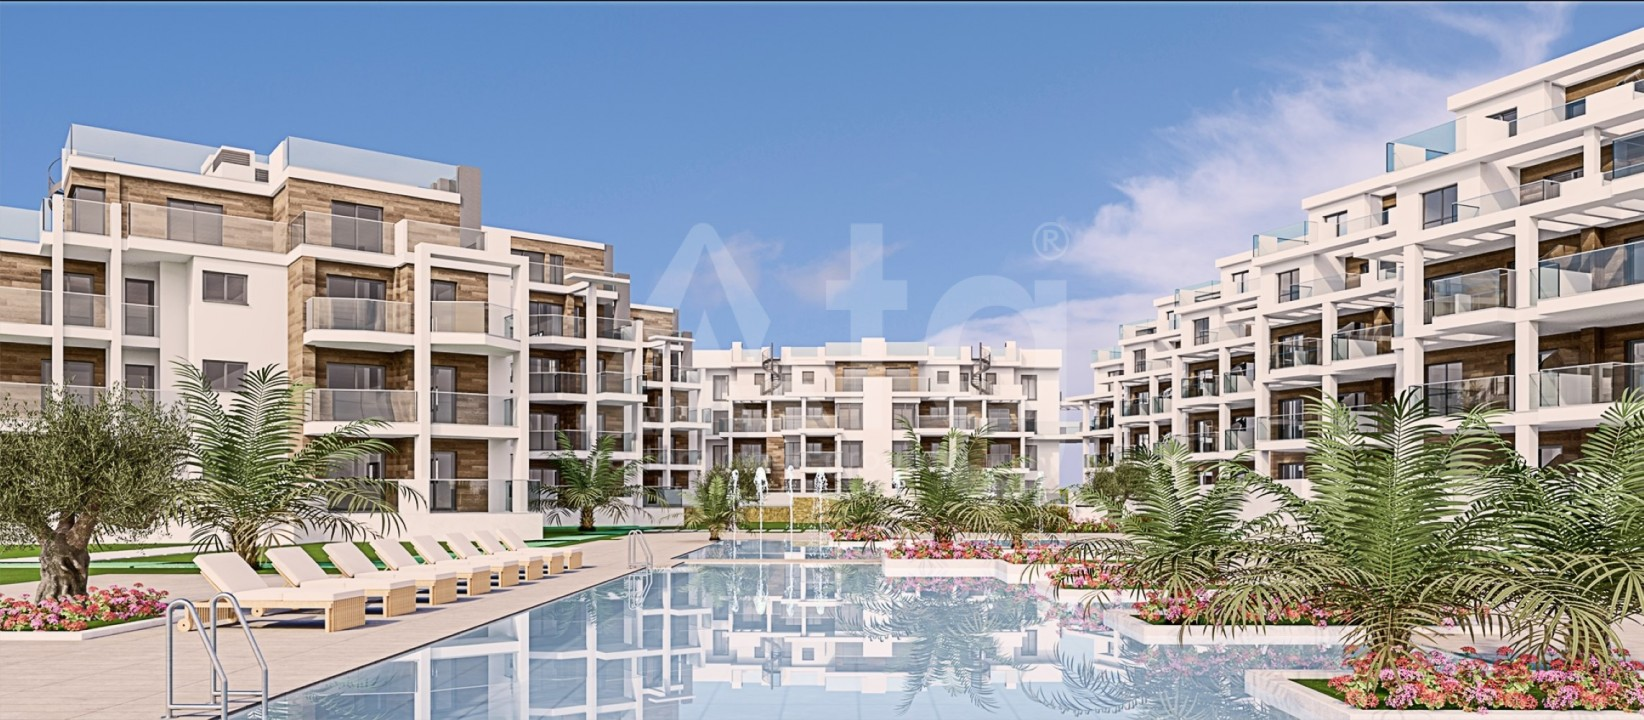 3 bedroom Apartment in Oliva  - CHG117747 - 3